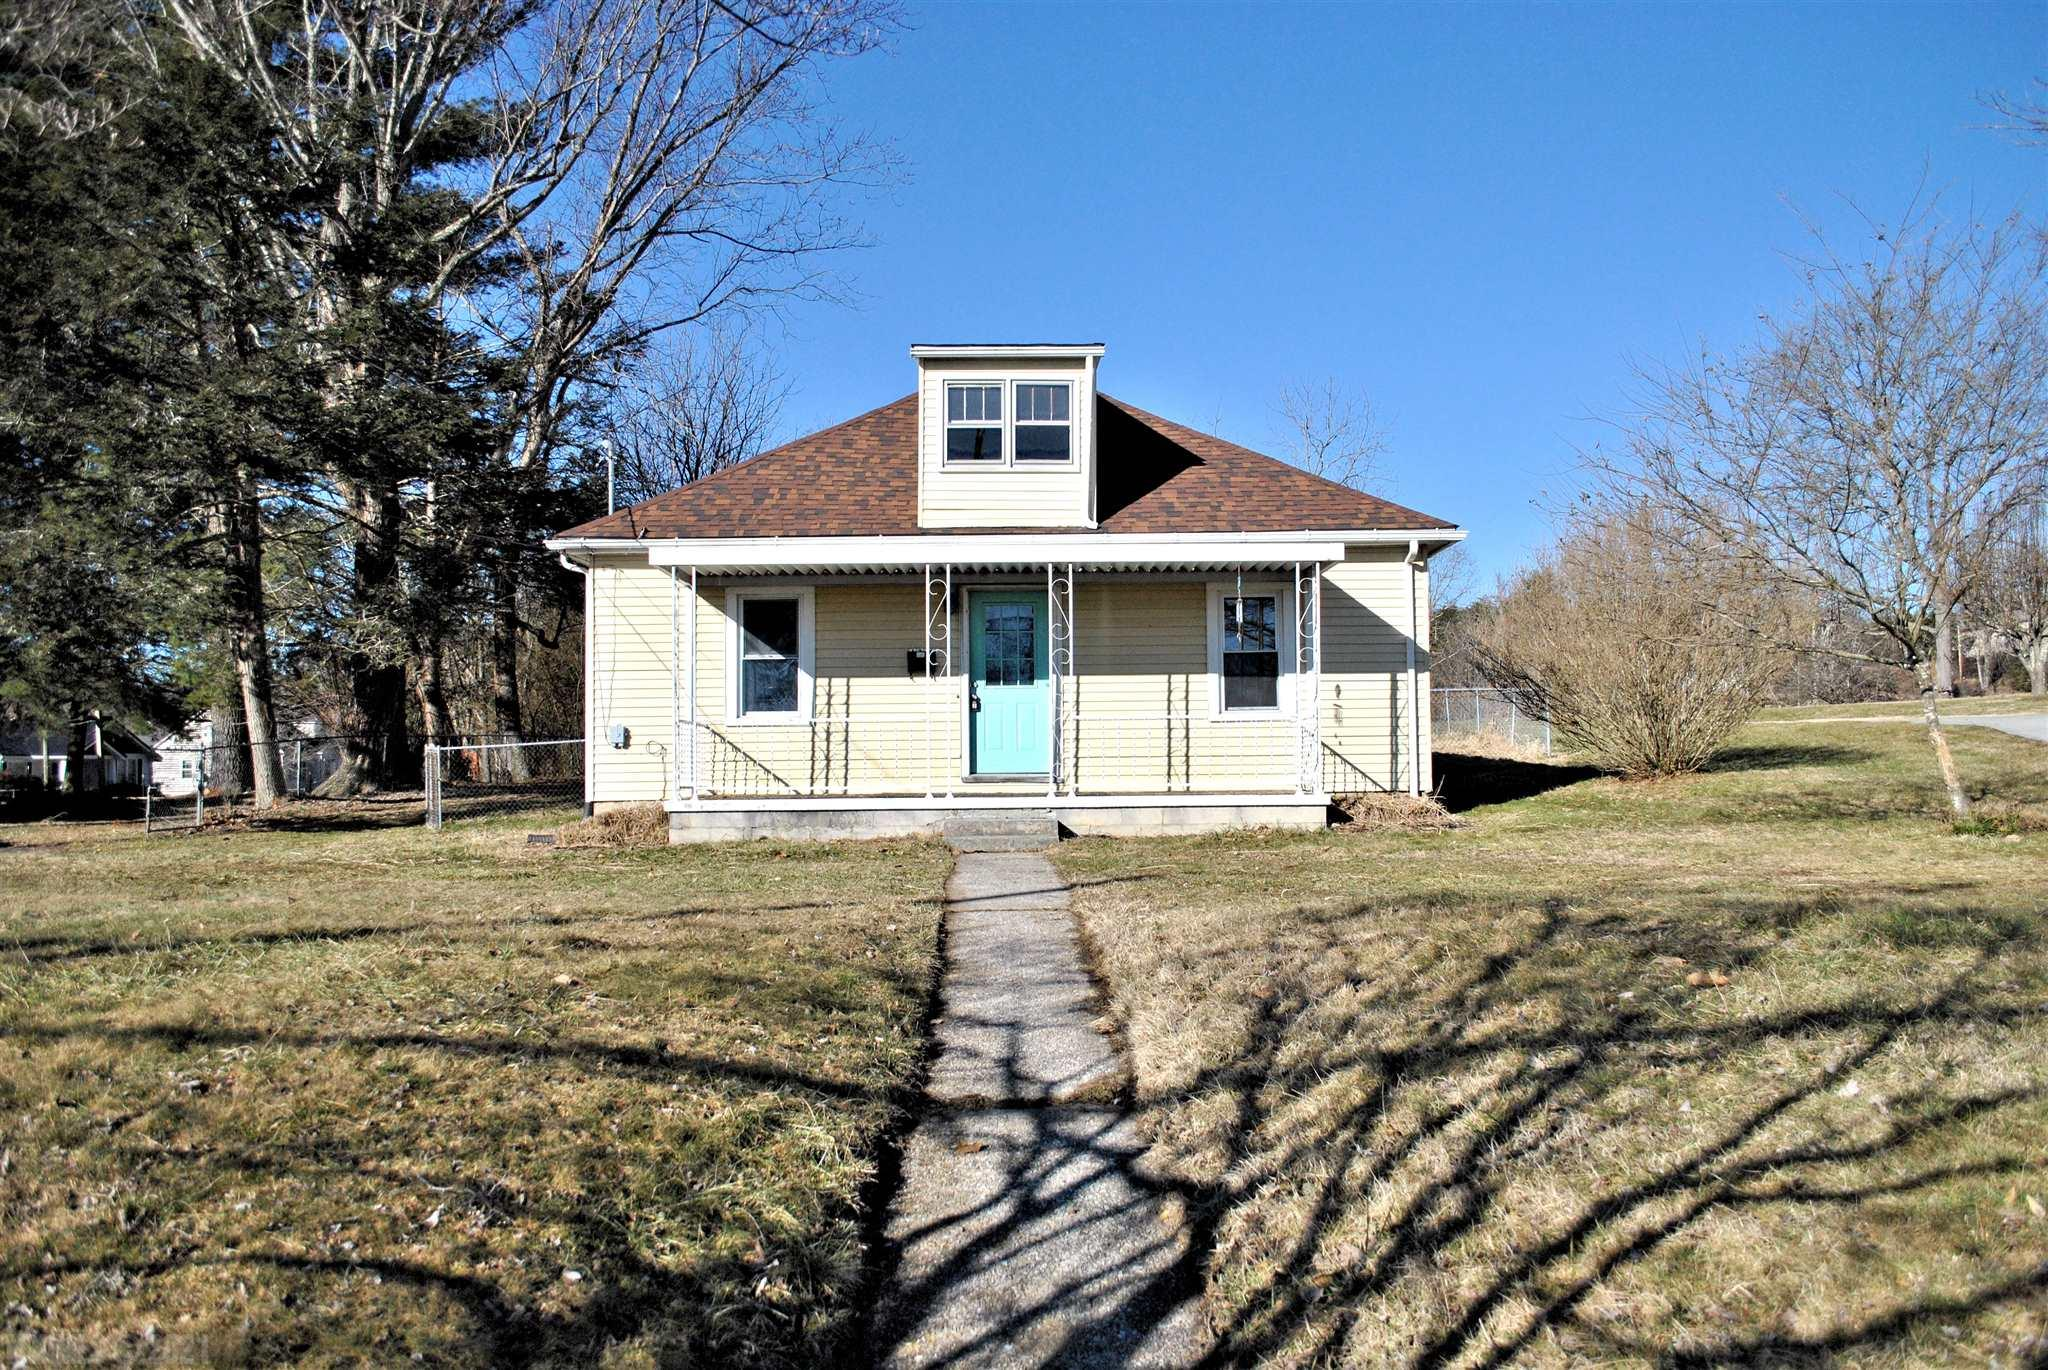 Two bedroom, one bath home minutes from downtown Pulaski with lots of potential. Covered front porch, partially fenced backyard, spacious laundry/mud room just off the kitchen with backdoor access to the yard. There is a partially finished loft area upstairs and home sits on a large, flat yard!